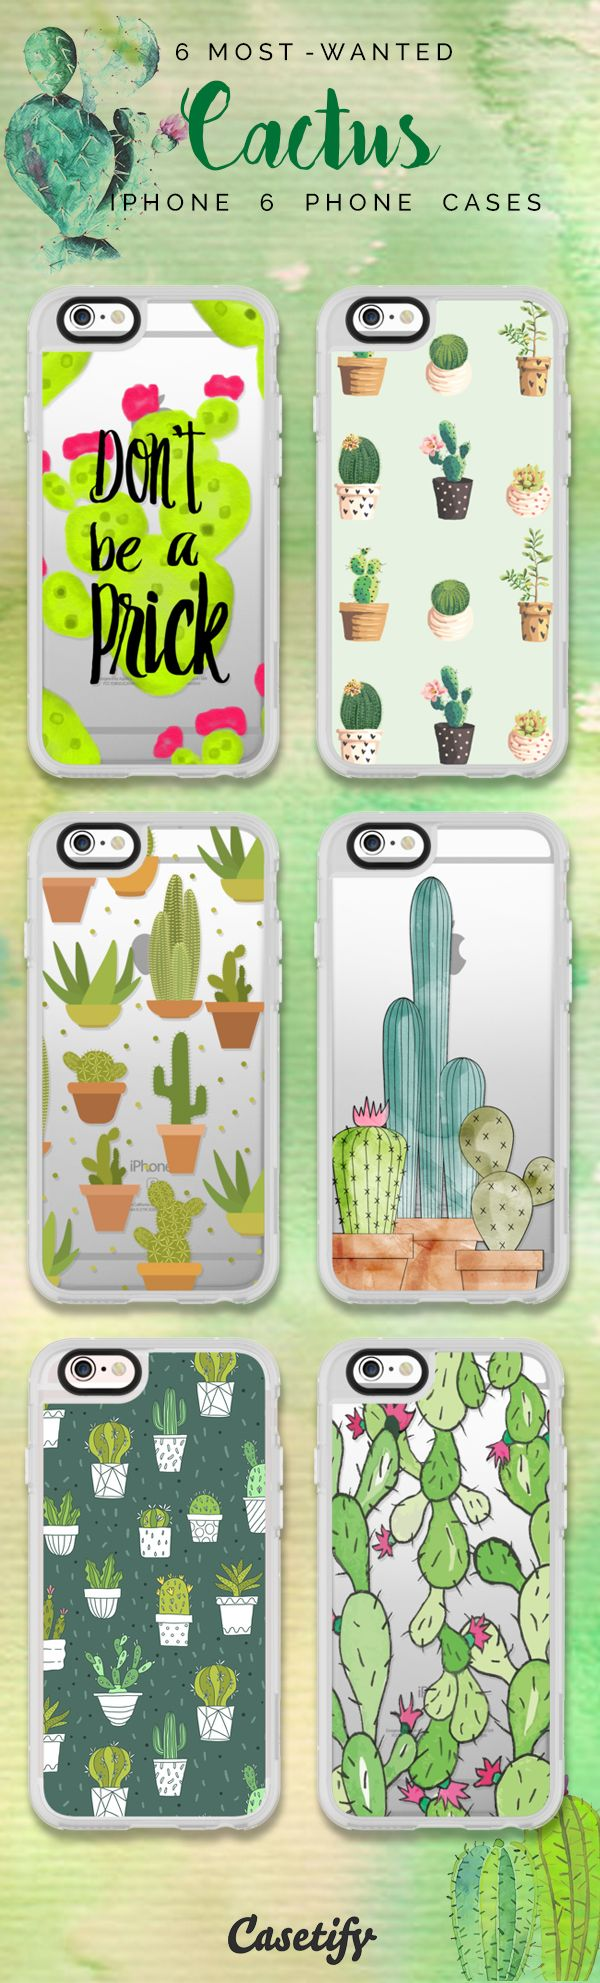 competitive price 3e1d9 ba65a Pin by Casetify on SHINE THROUGH iPhone case Ideas | Casetify ...